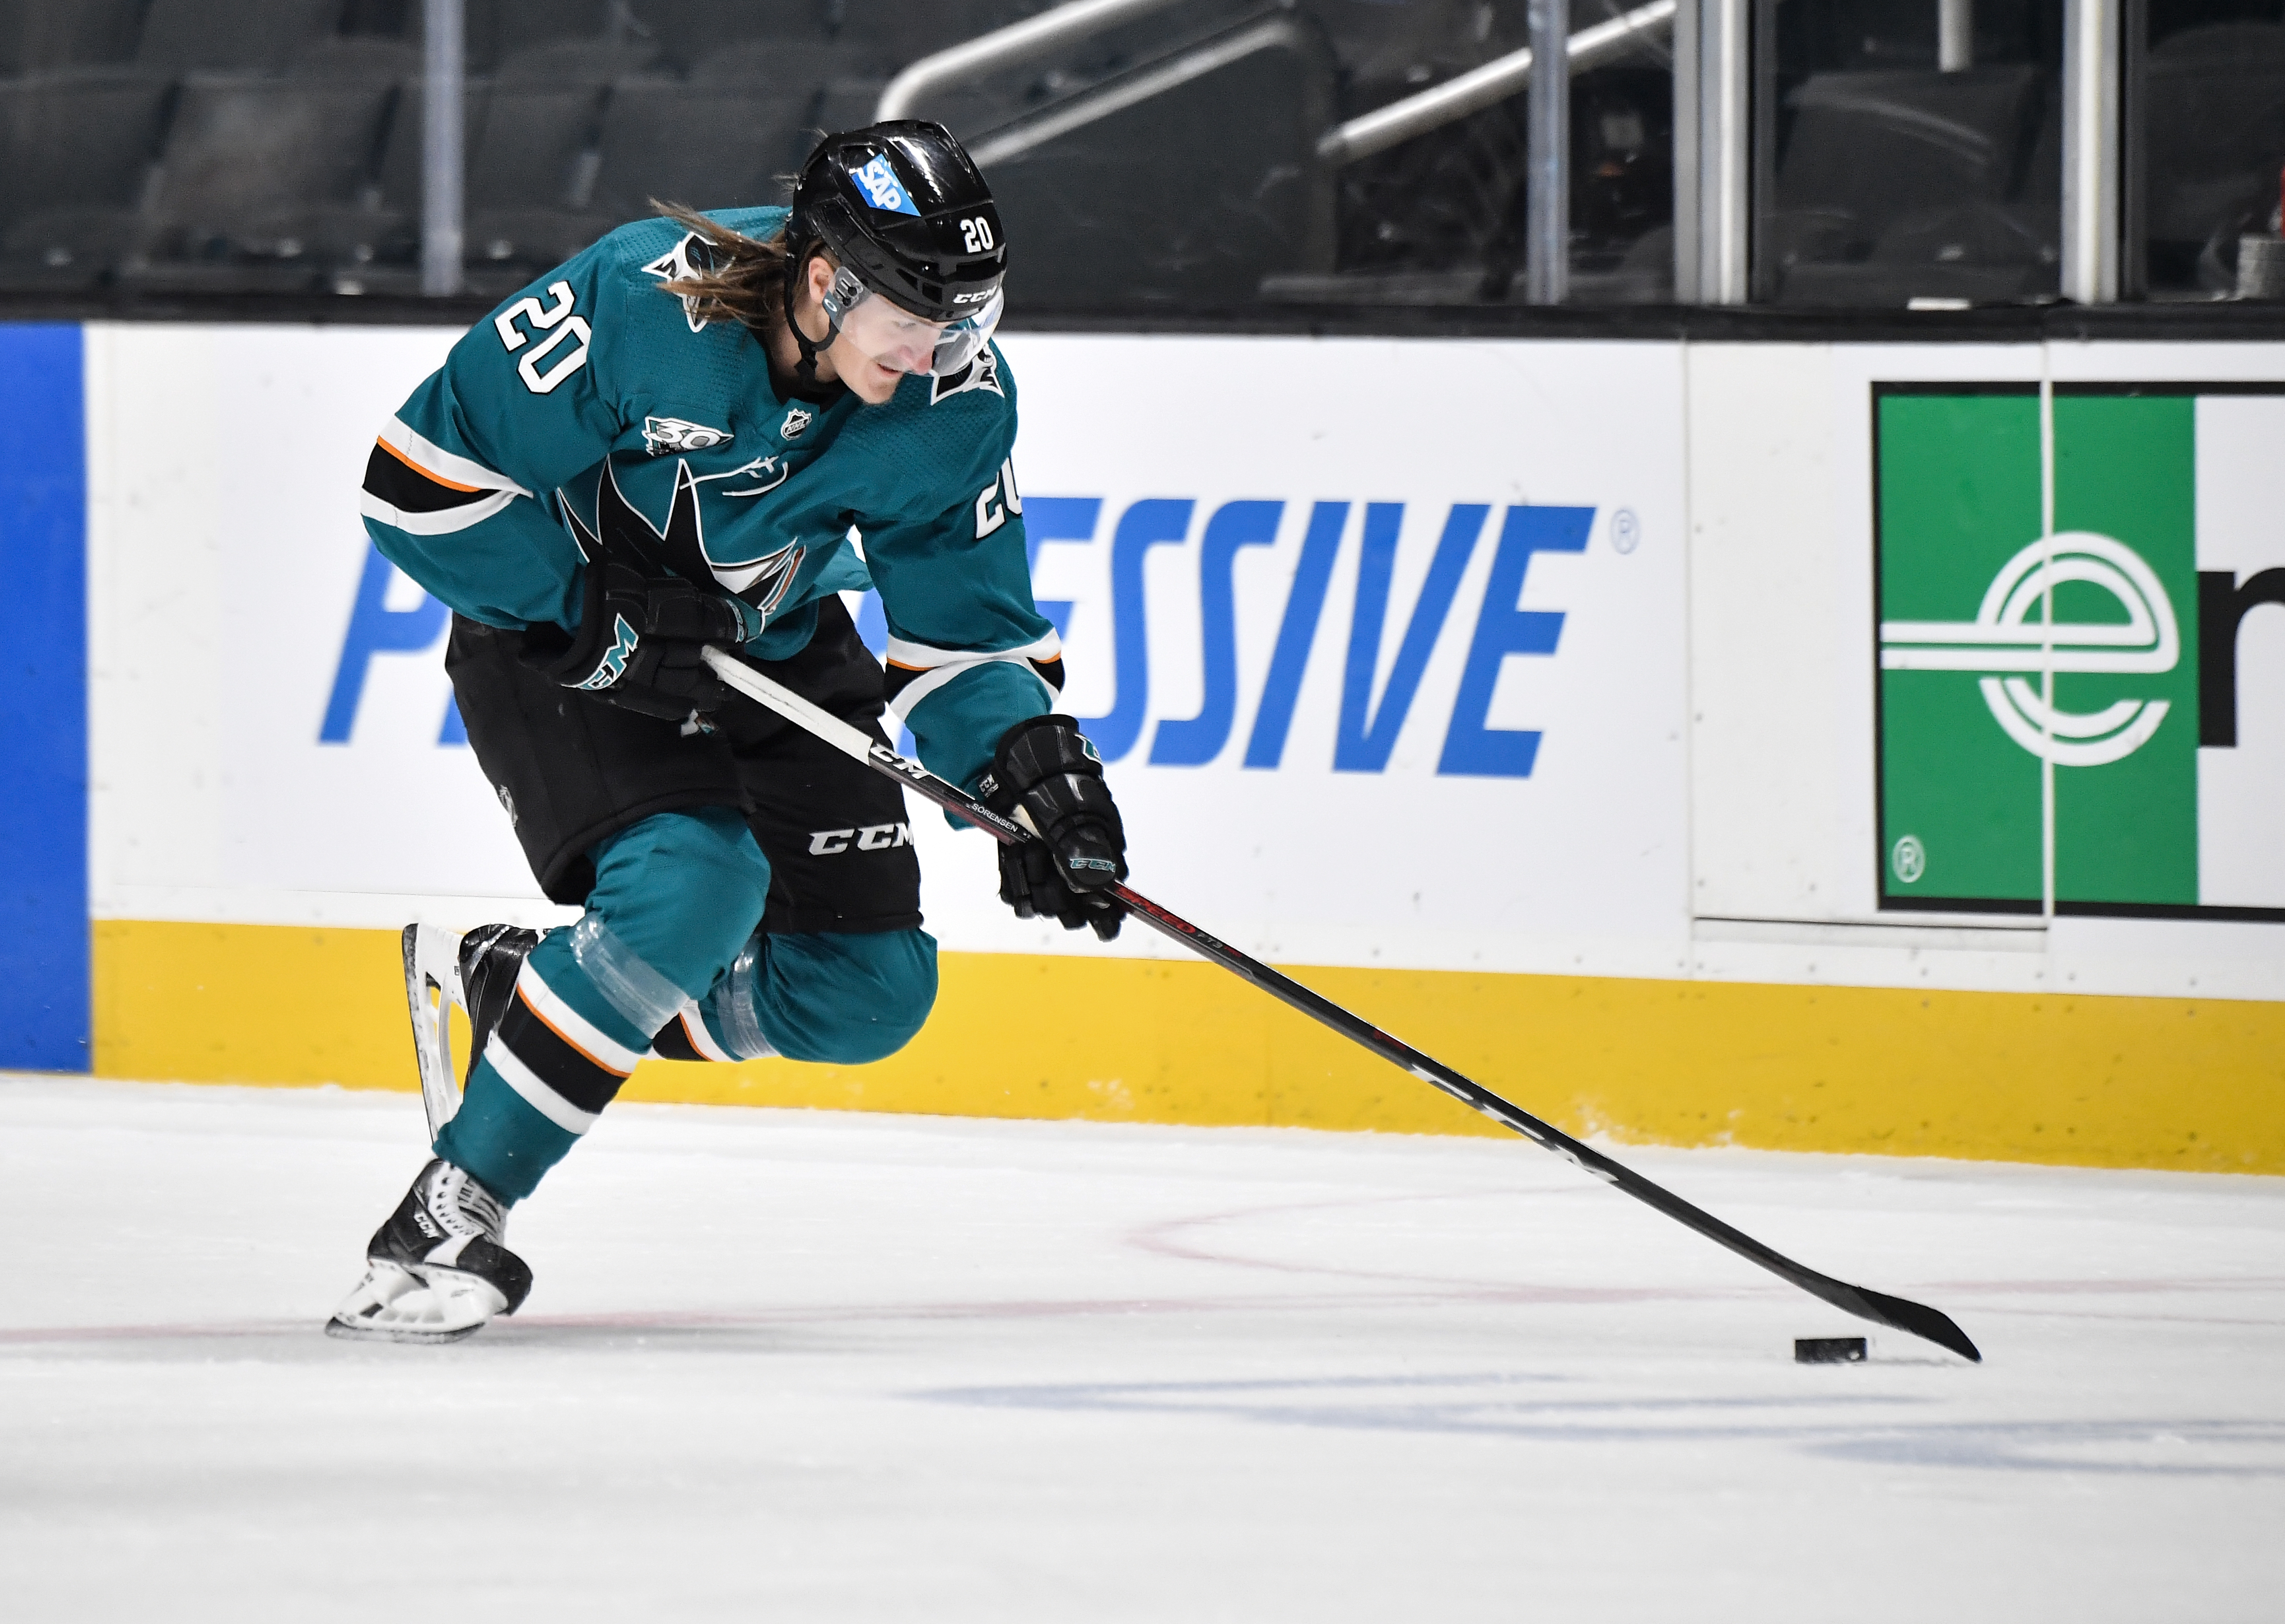 Marcus Sorensen #20 of the San Jose Sharks skates with the puck against the Anaheim Ducks at SAP Center on April 12, 2021 in San Jose, California.